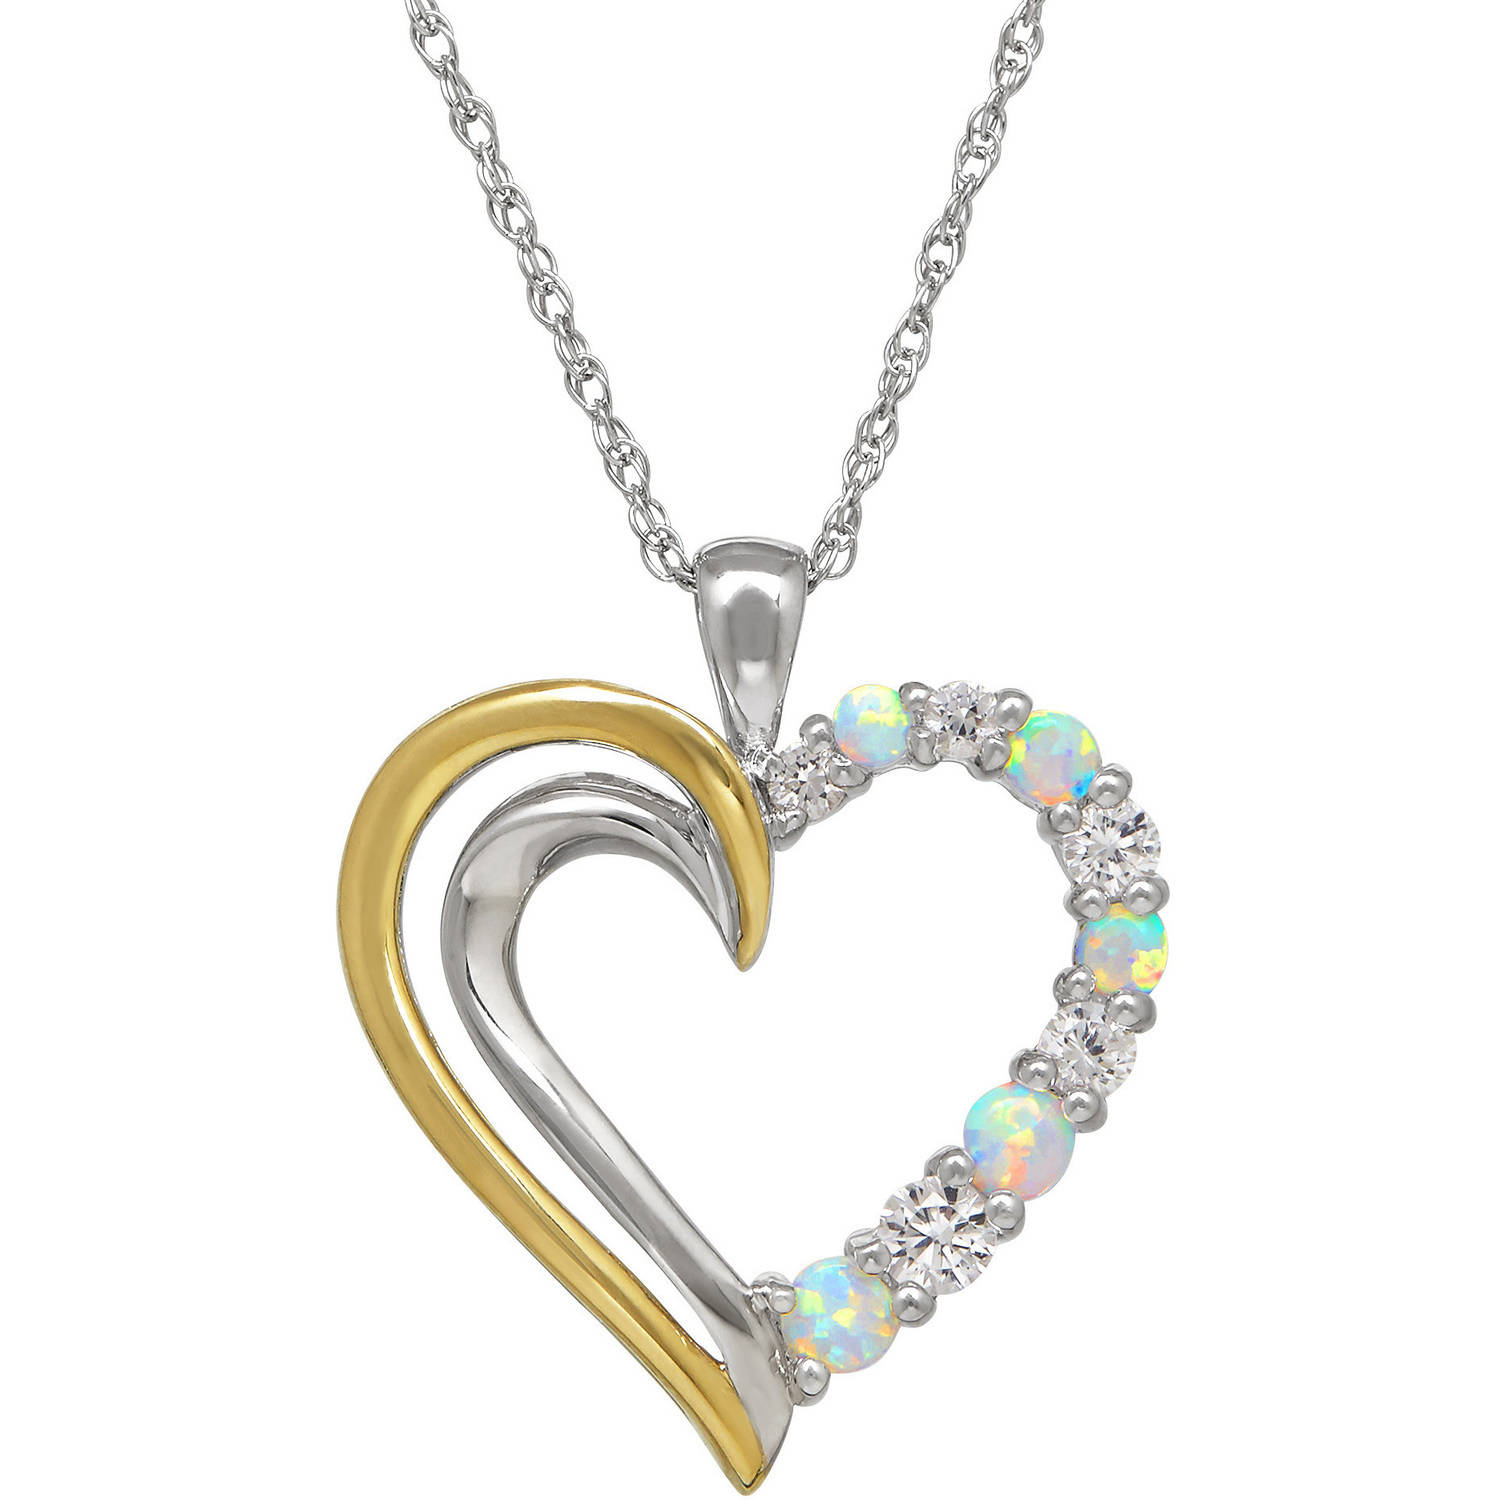 "Duet Created Opal with White Topaz Sterling Silver and 10kt Yellow Gold Open Heart Pendant, 18"" by Richline Group Inc"